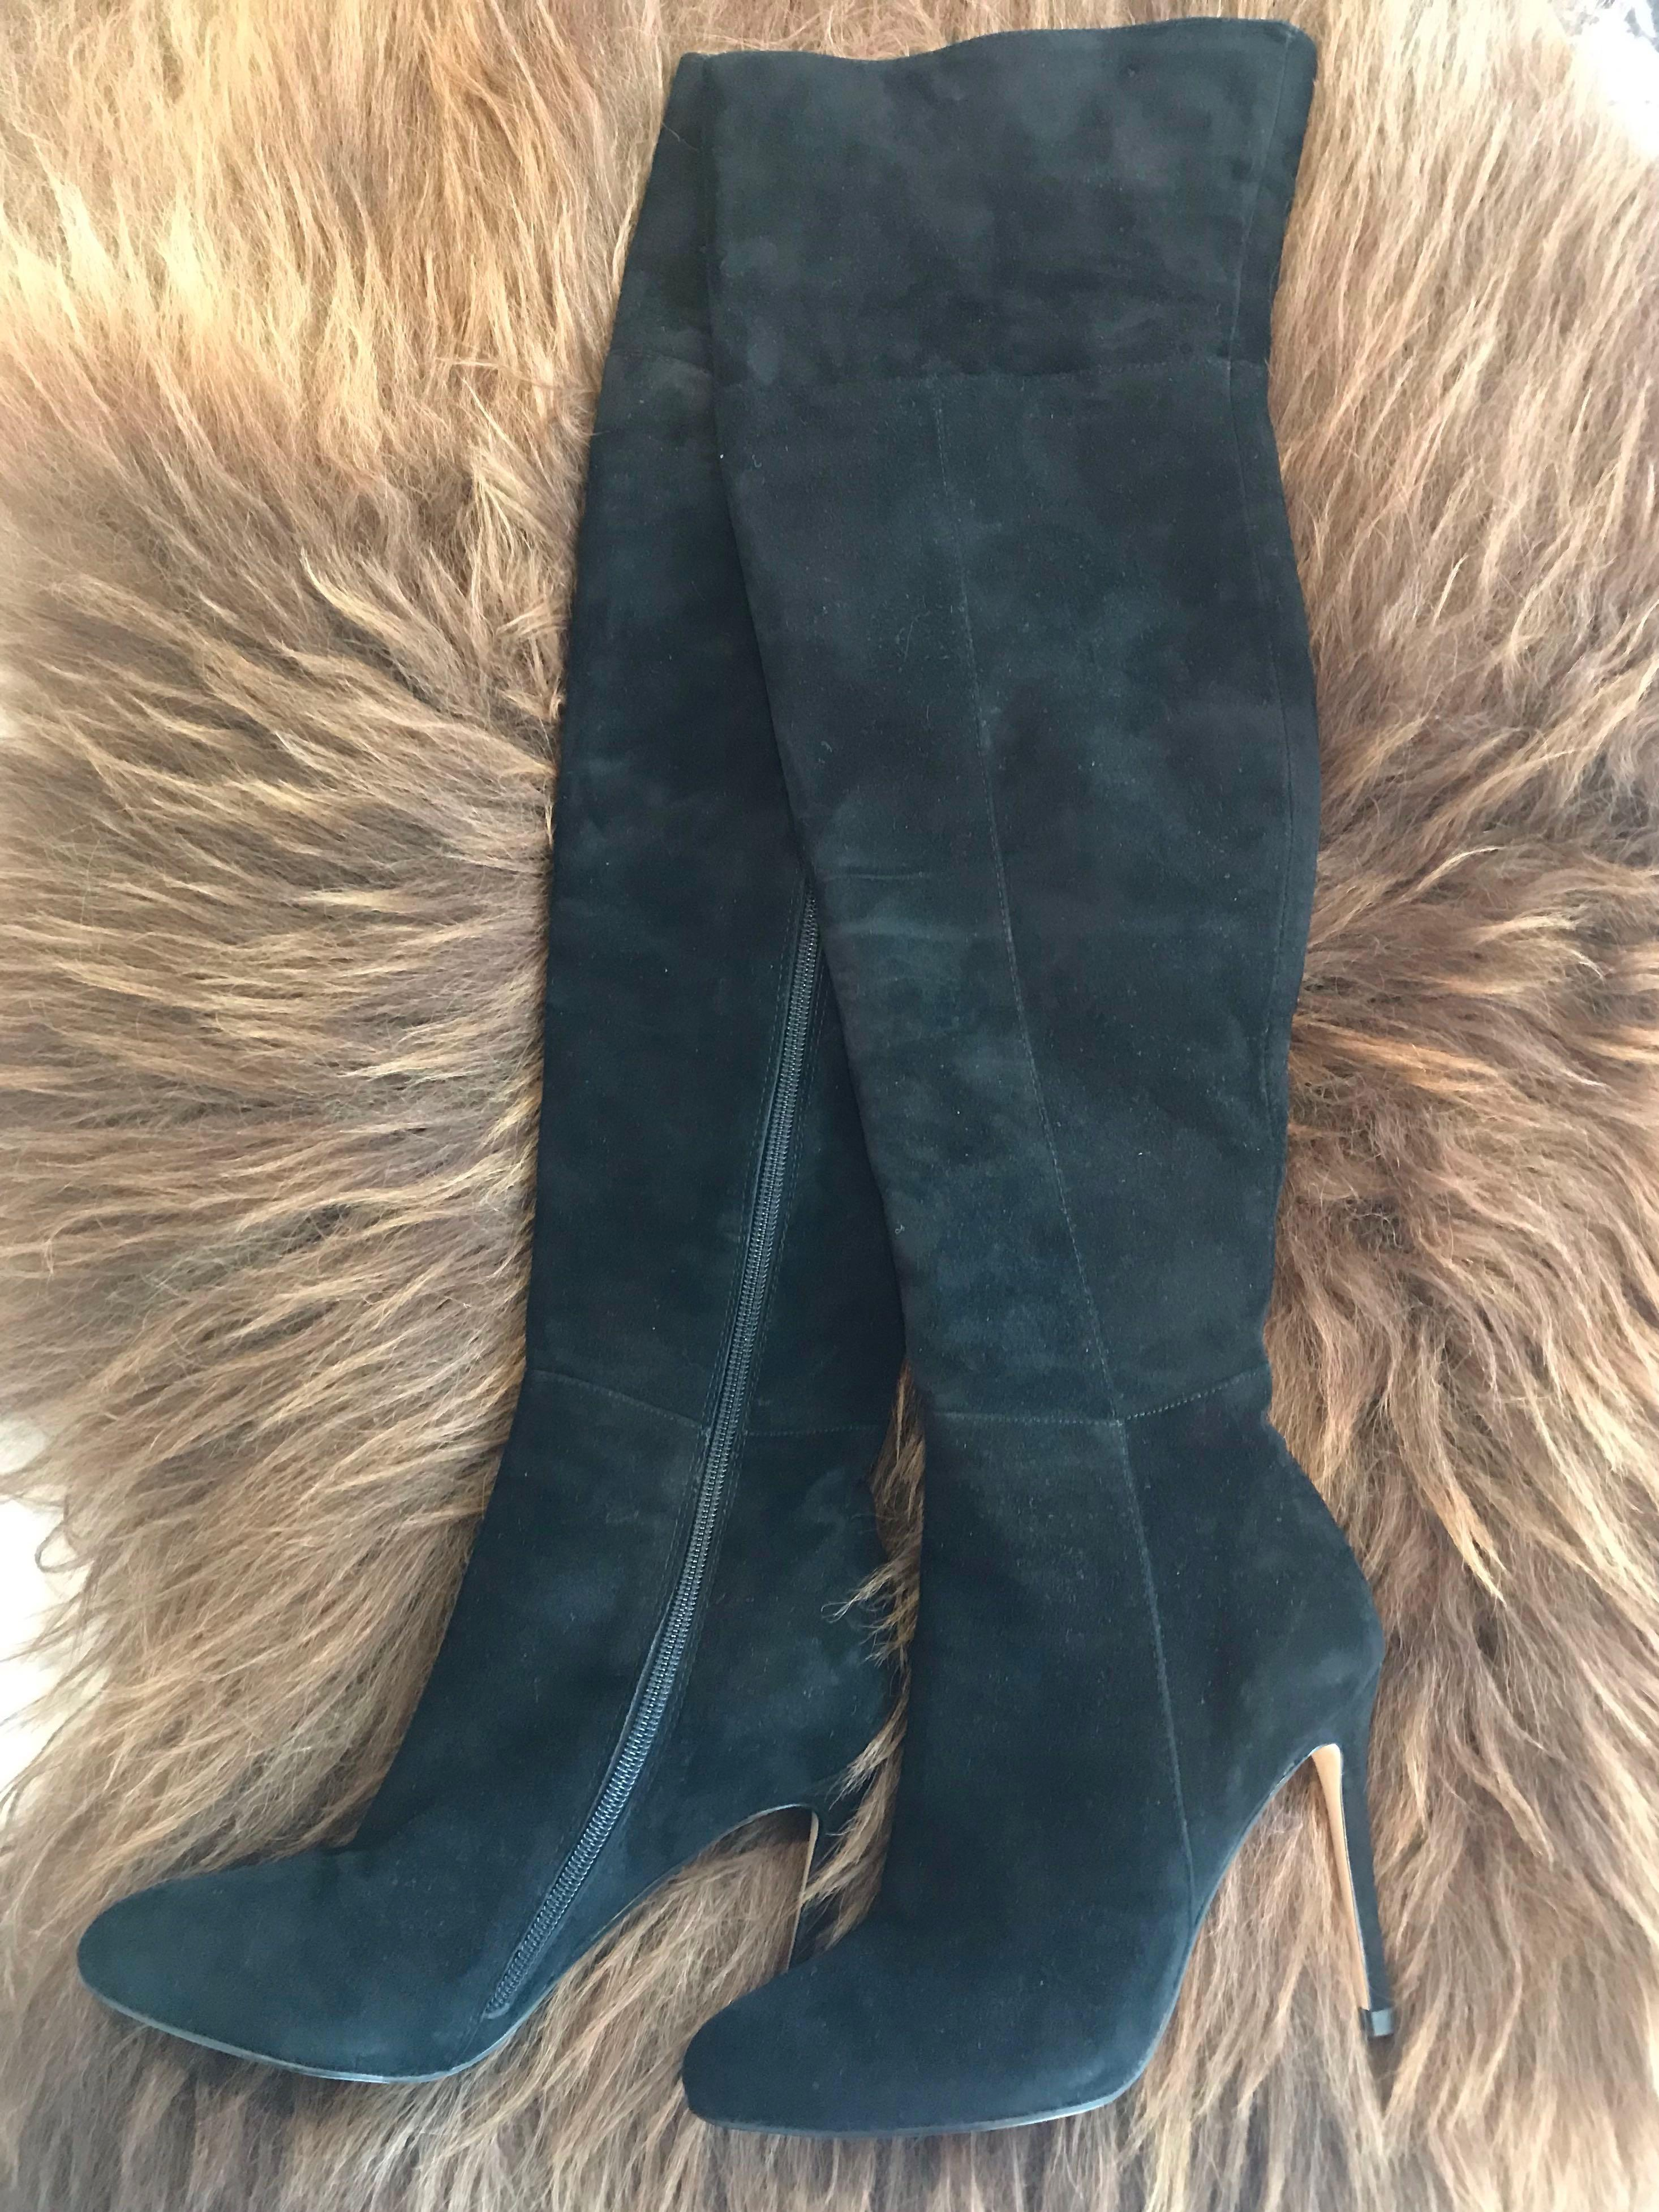 Mansion thigh high black leather suede boots size 37